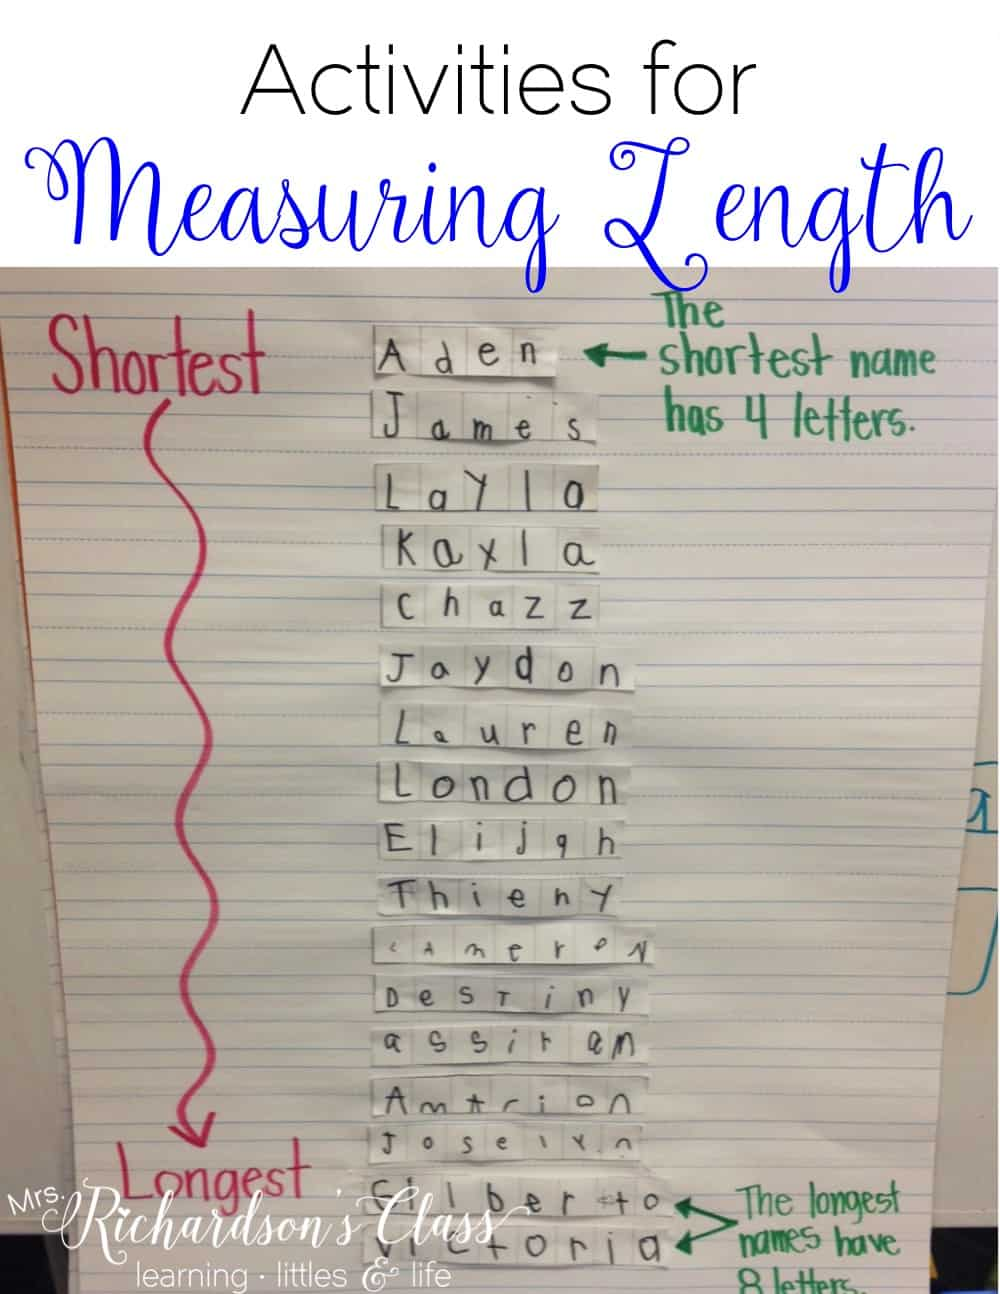 Measuring Length activities that are PERFECT for kindergarten learners! Grab some FREE fun ideas to use, including nonstandard measuring. My students loved this name activity, too! #MathLessons #kindergartenmath